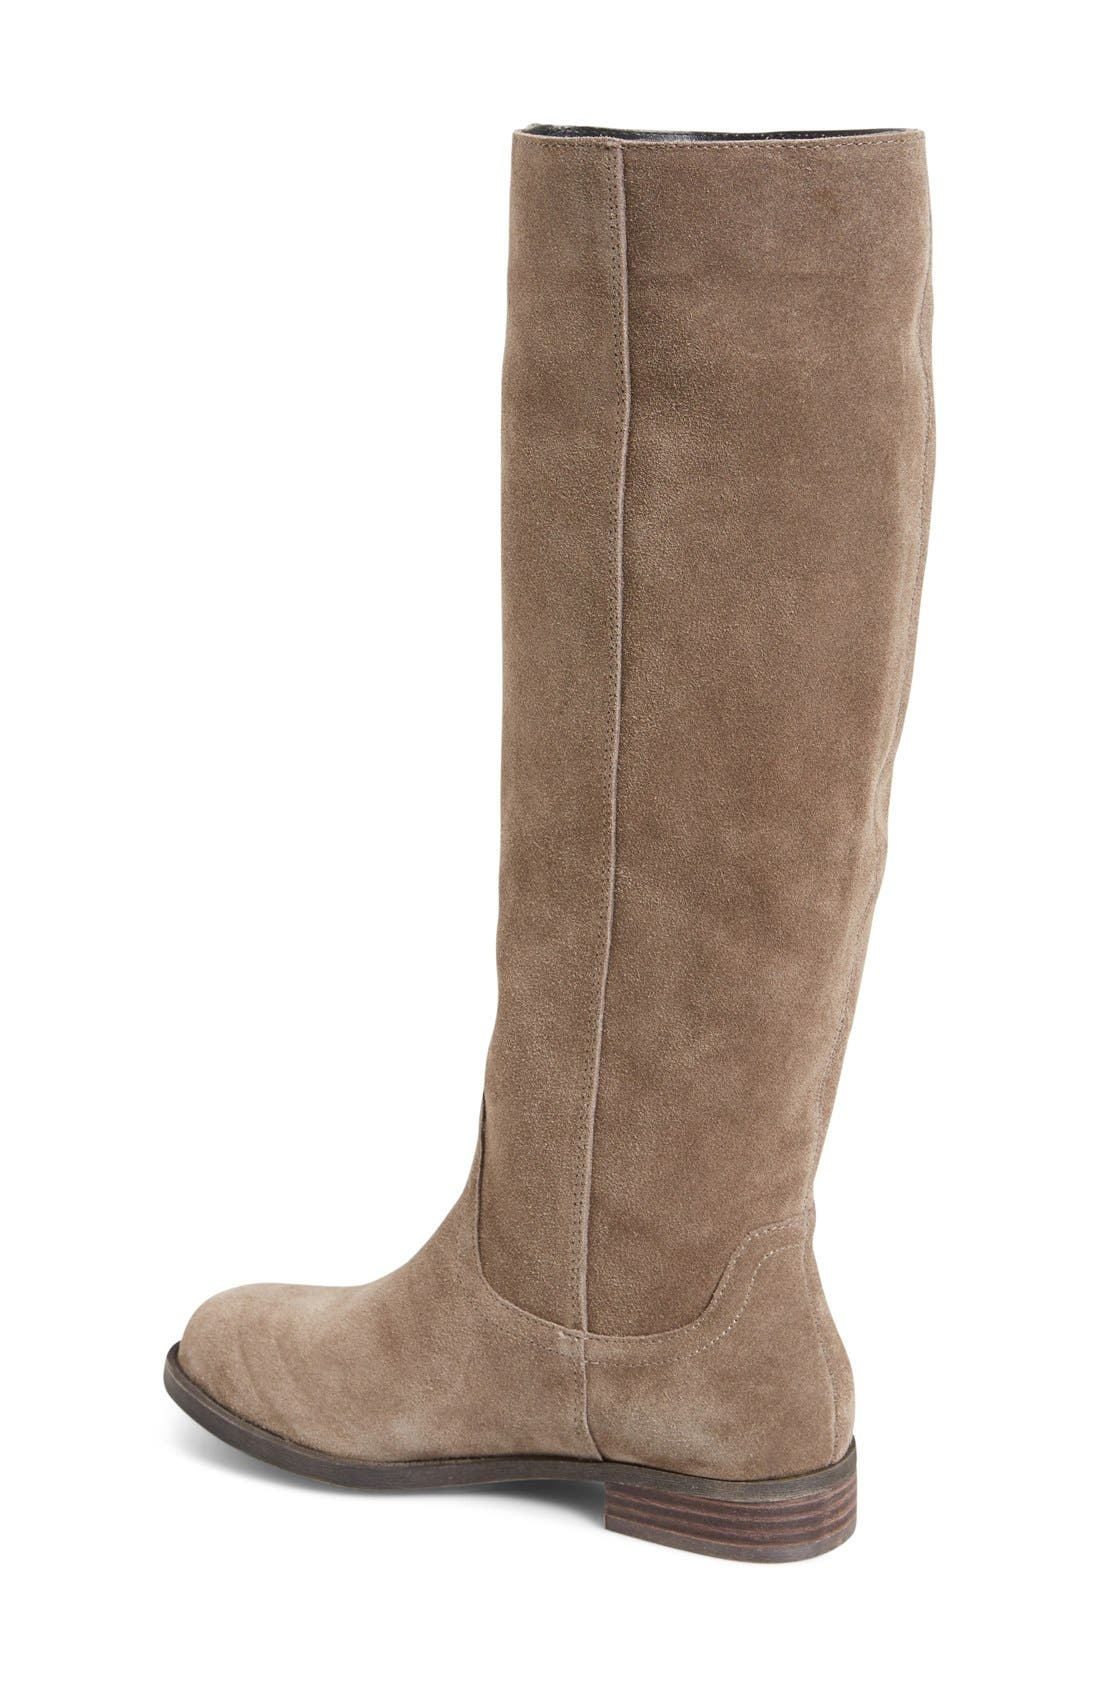 Alternate Image 4  - Sole Society 'Kellini' Suede Knee High Boot (Women)